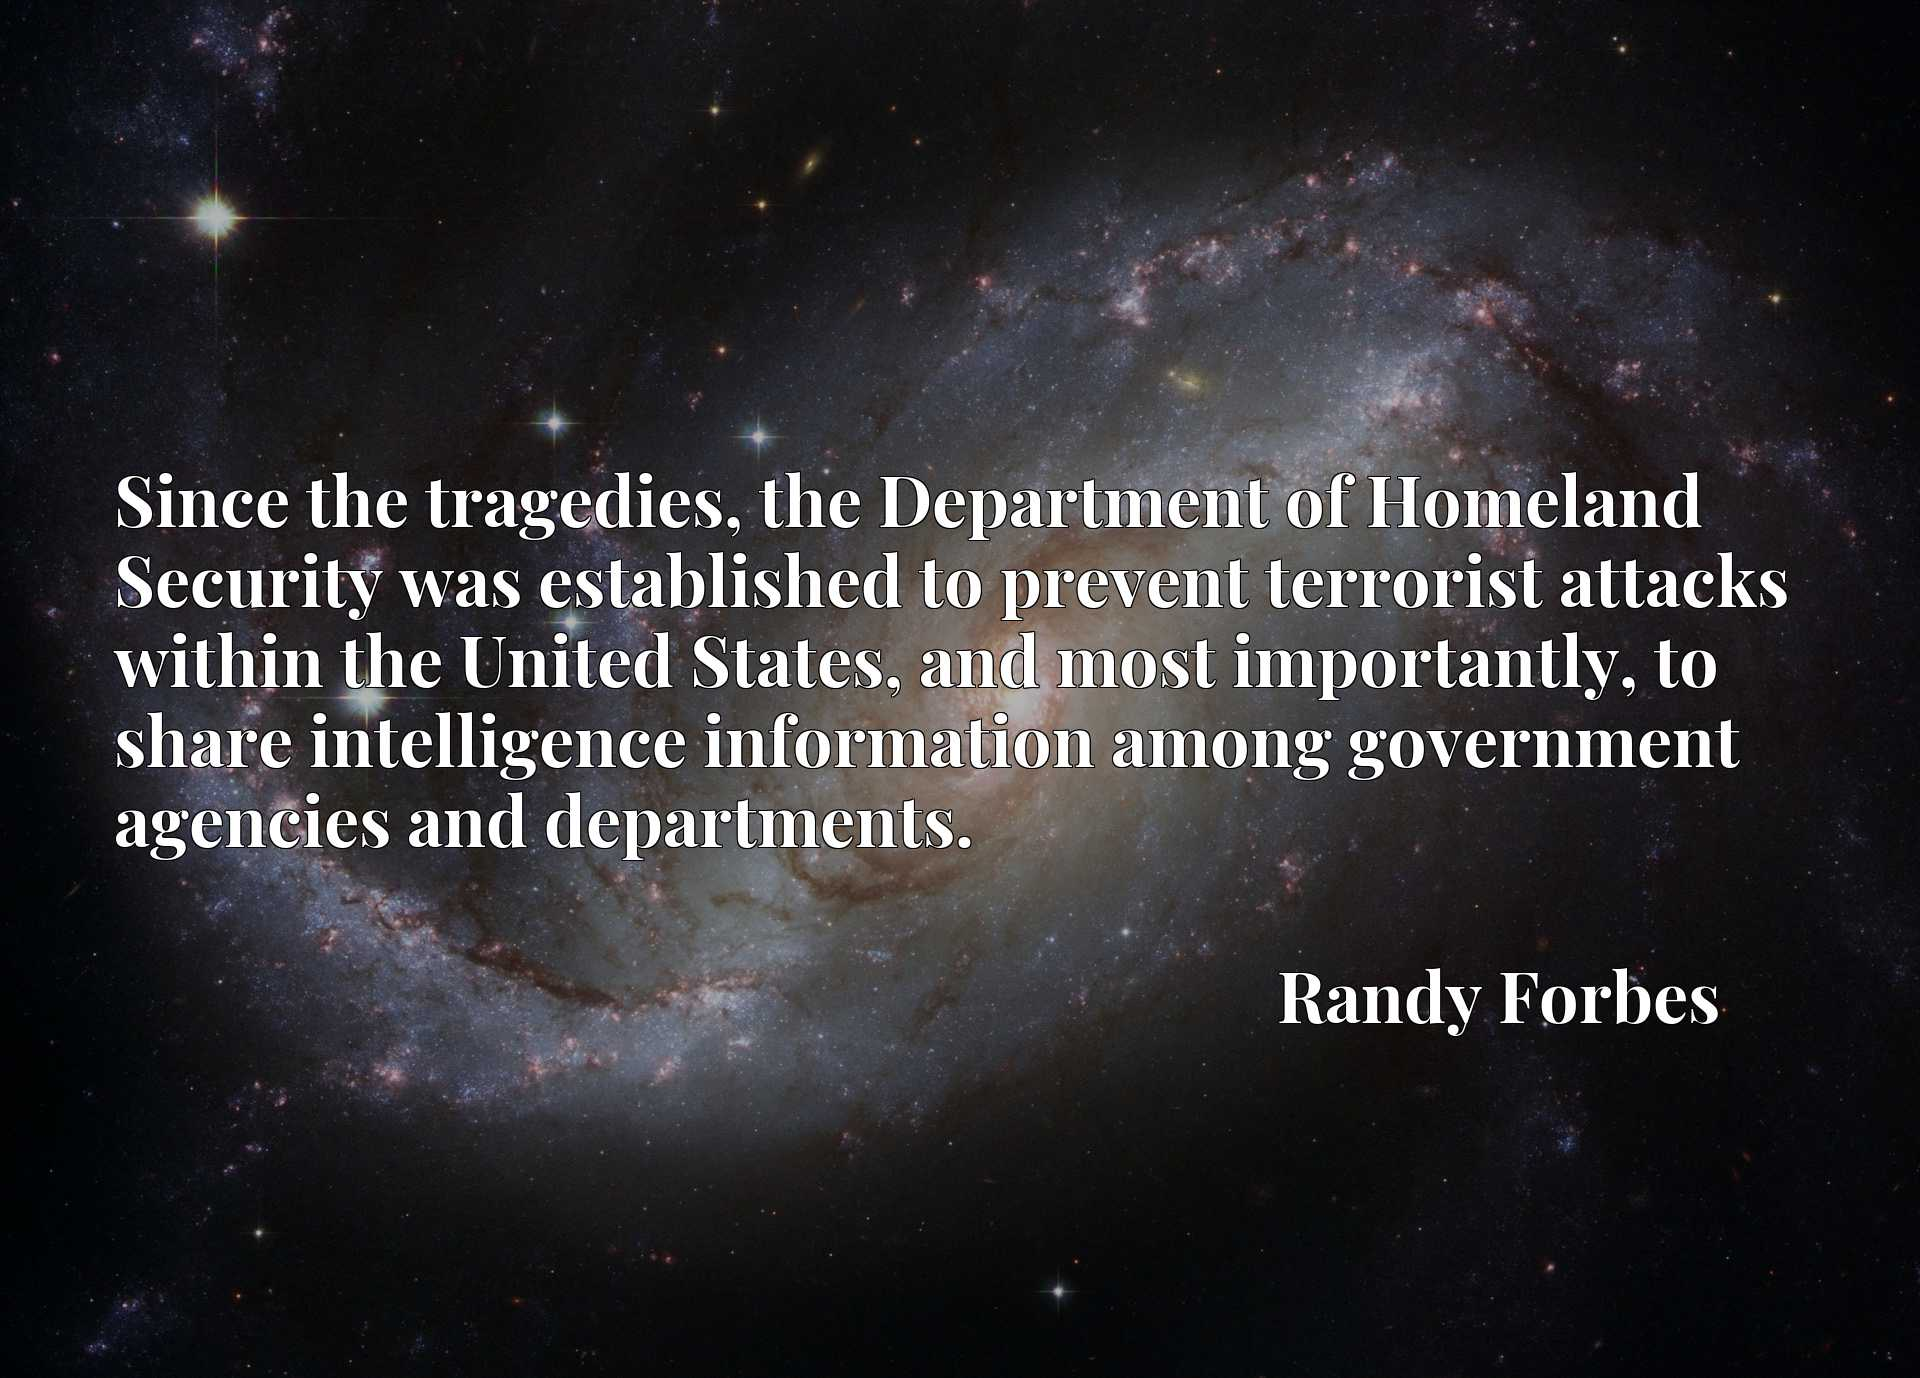 Since the tragedies, the Department of Homeland Security was established to prevent terrorist attacks within the United States, and most importantly, to share intelligence information among government agencies and departments.